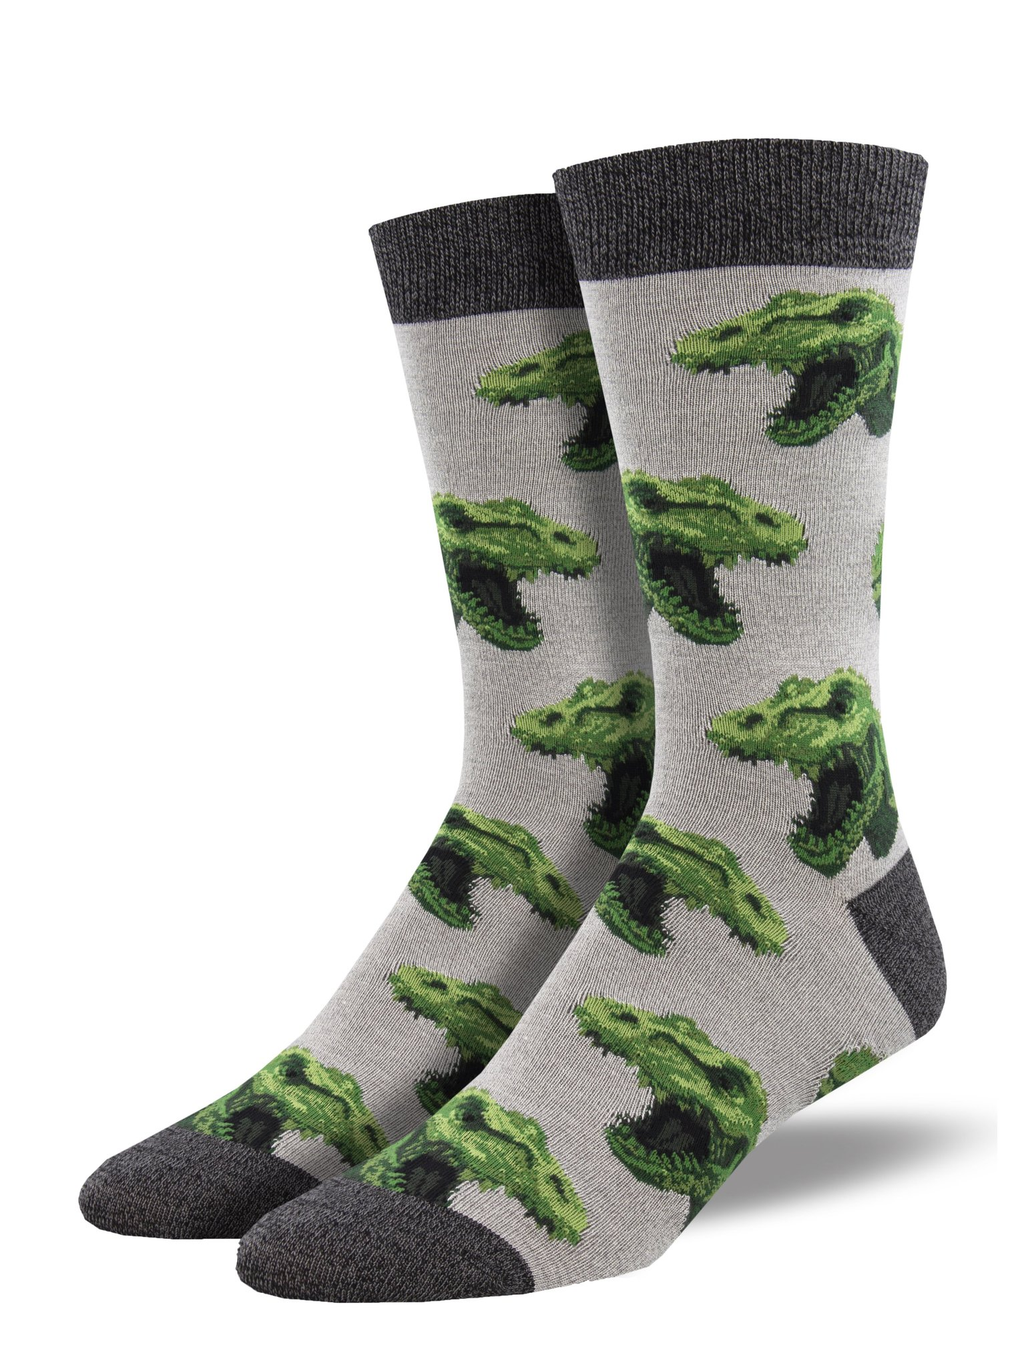 Rex Your Muscles Gray Heather Men's Socks